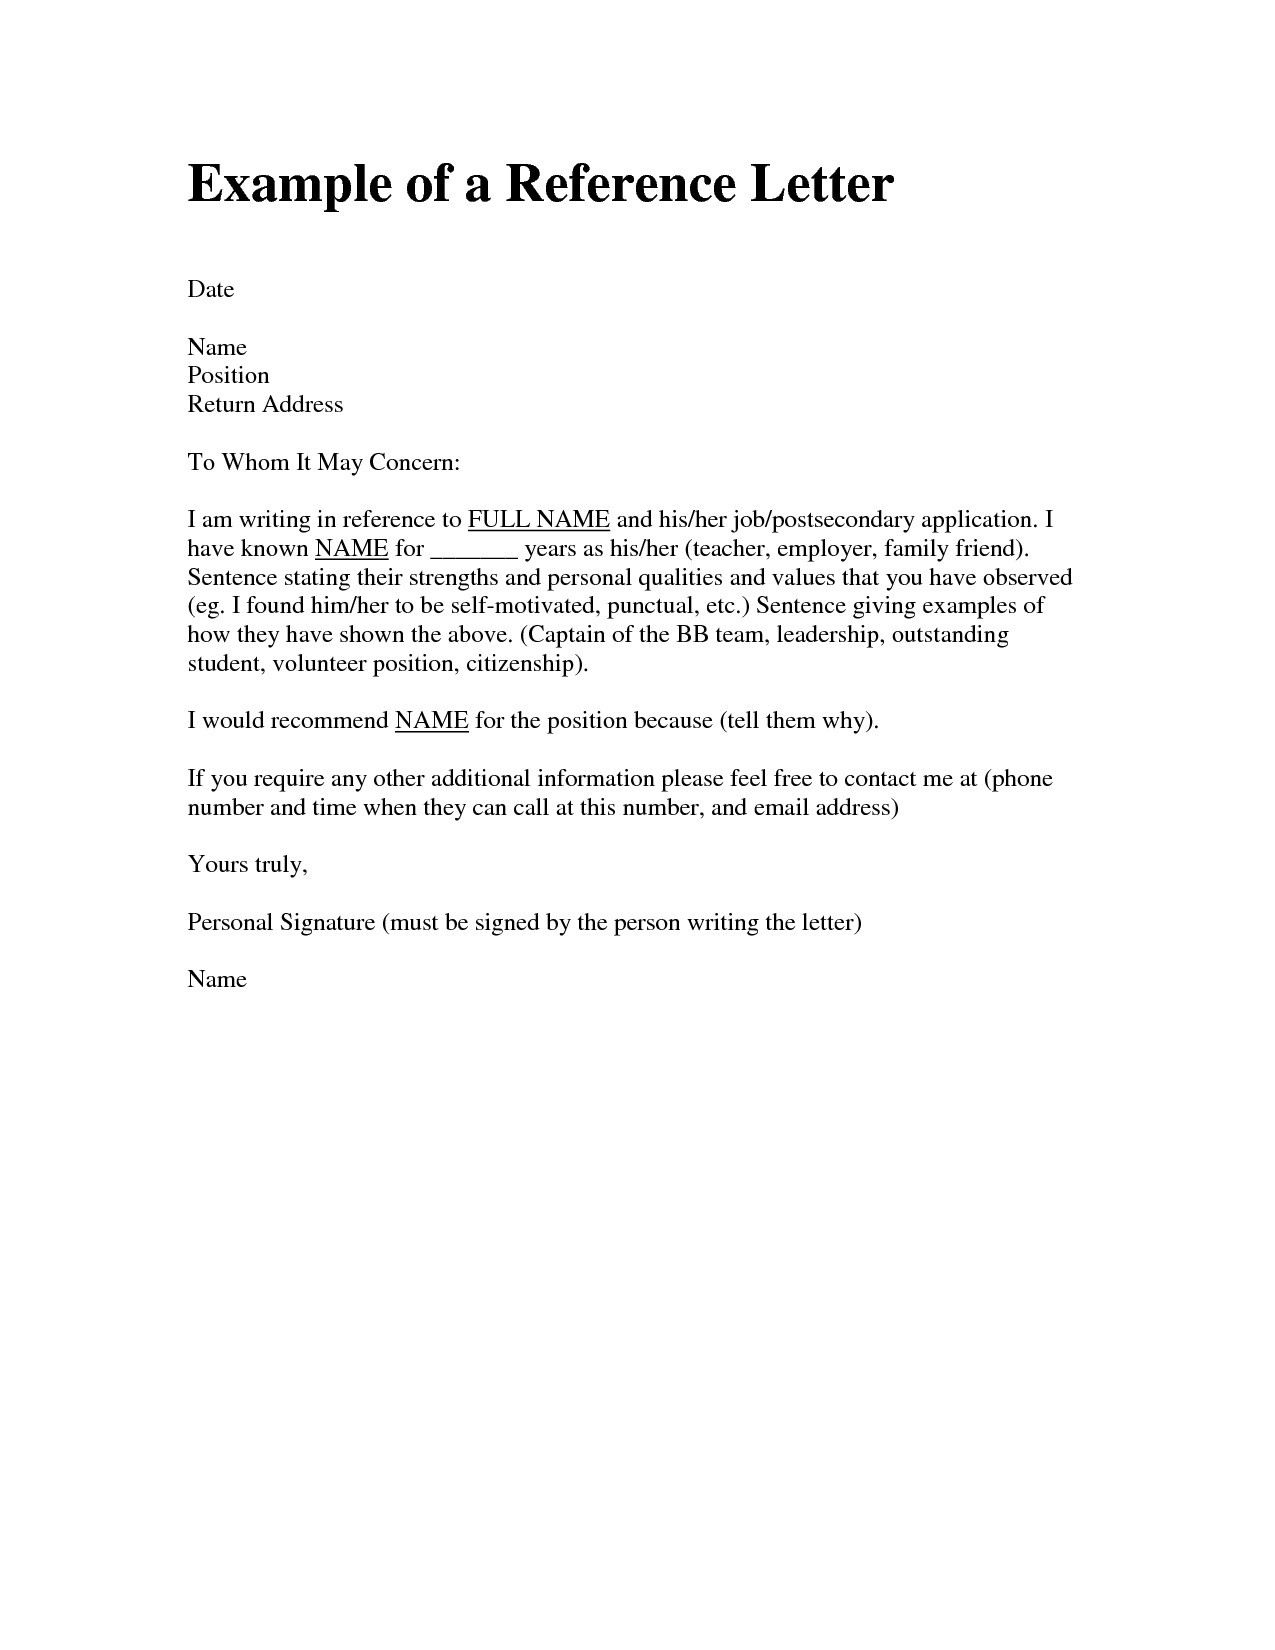 Letter Of Recommendation for A Friend Template - Example Personal Re Mendation Letter for Job Best Re Mendation